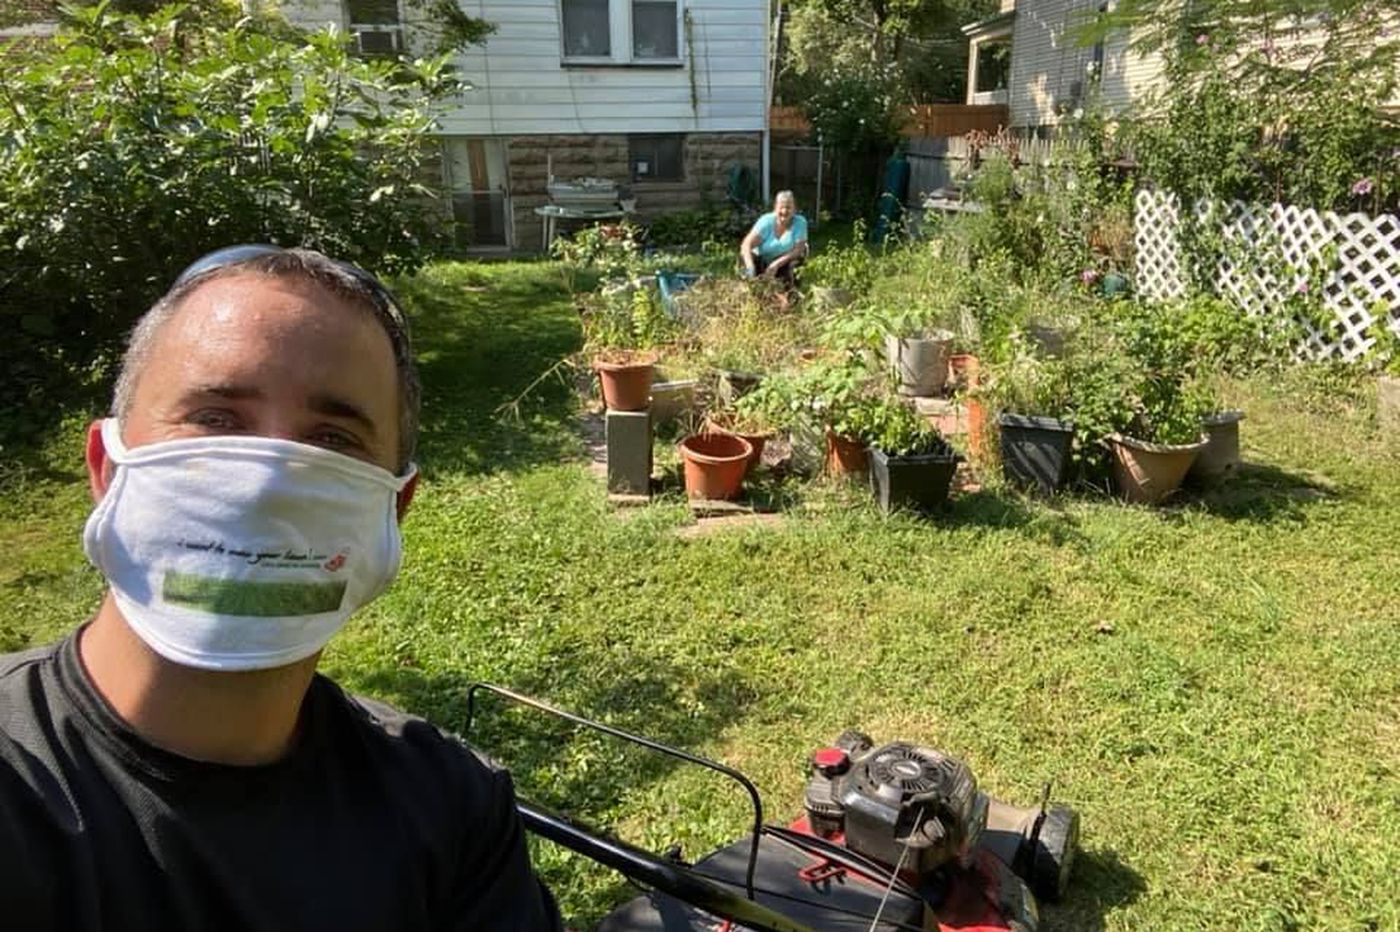 This New York exec got laid off in the pandemic, so he started mowing lawns. For free.